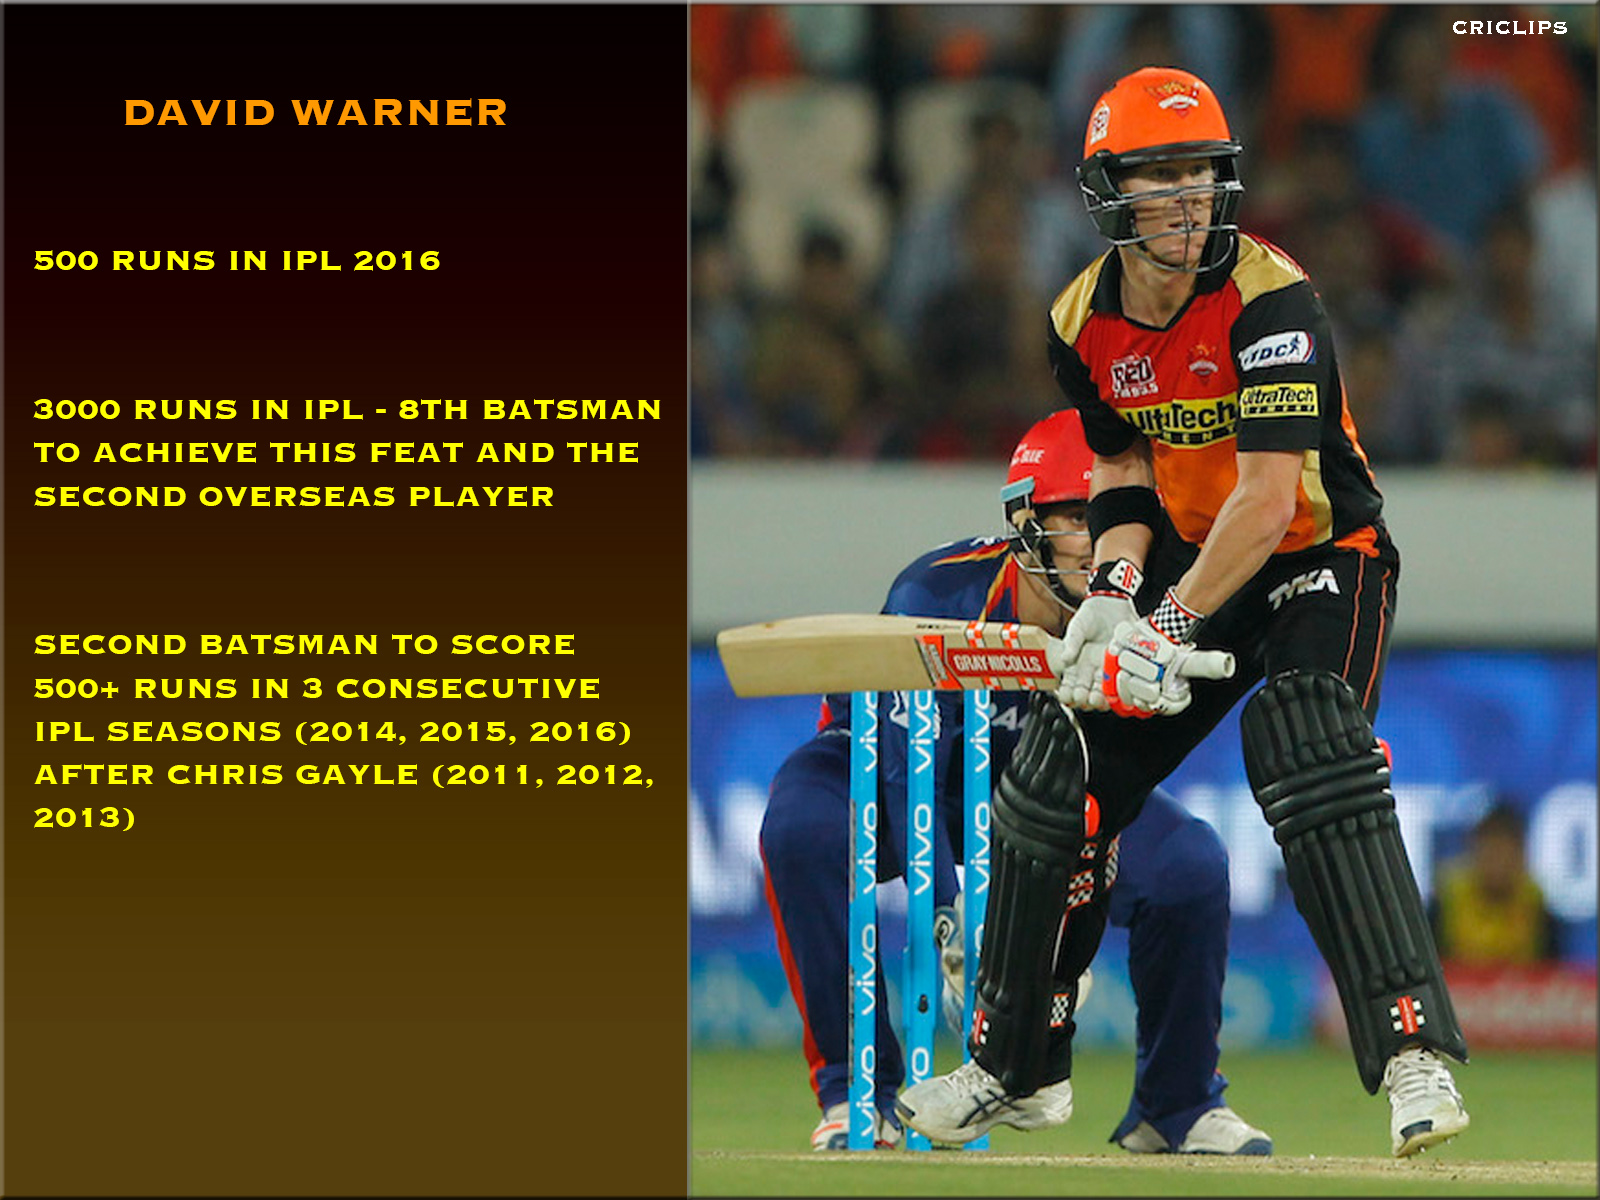 David warner 500 runs in IPL 2016